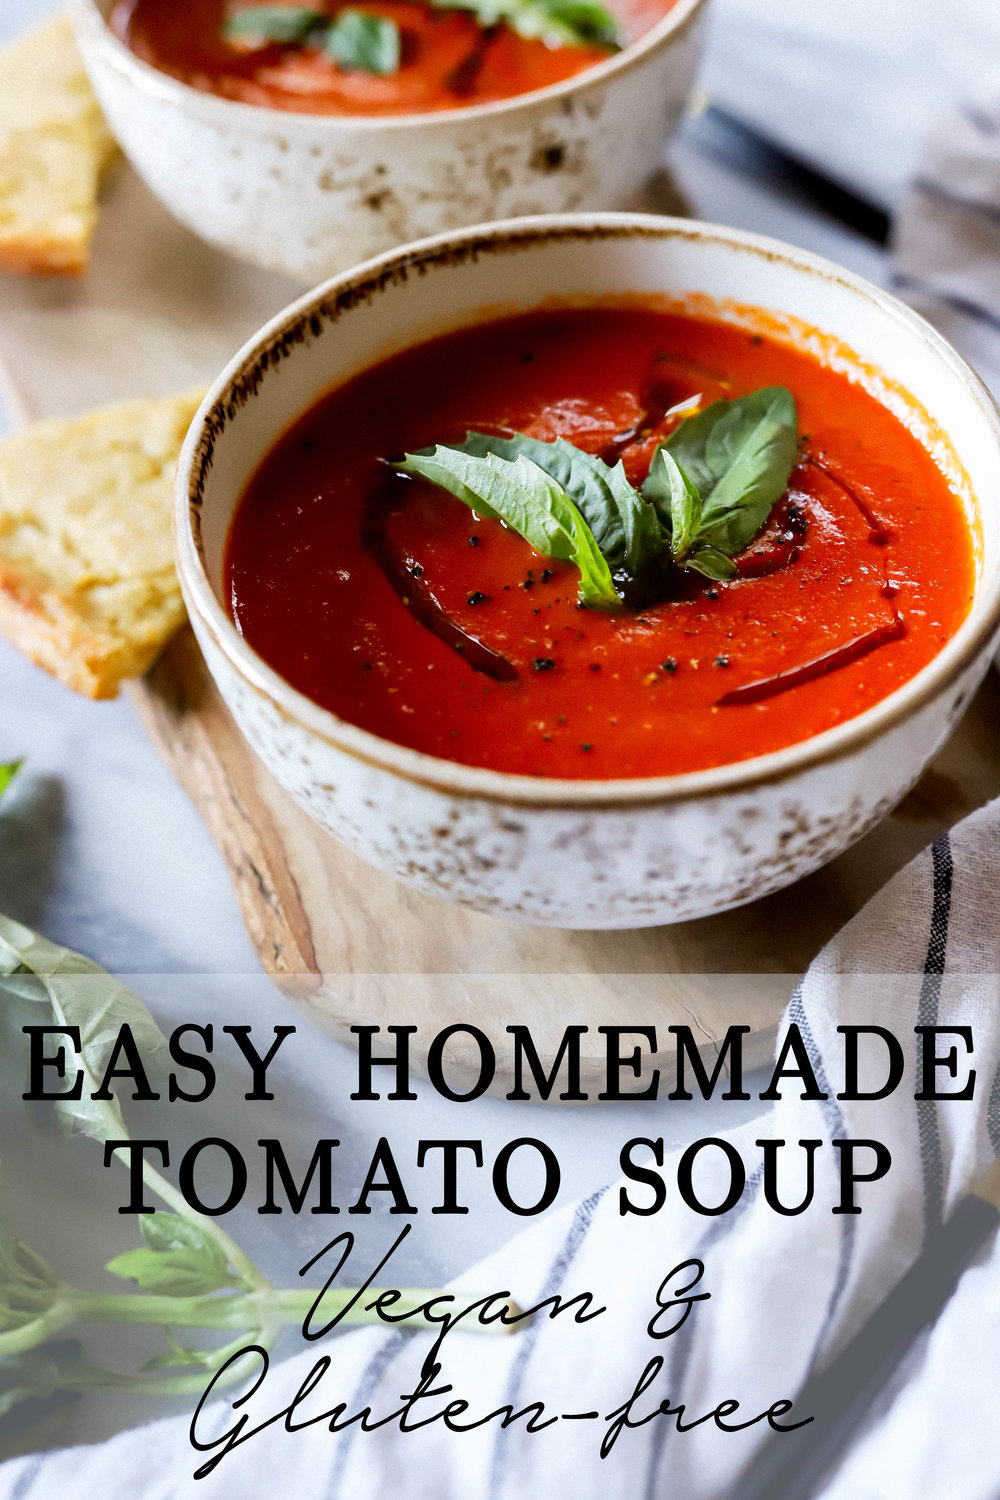 Easy vegan and gluten-free homemade tomato soup